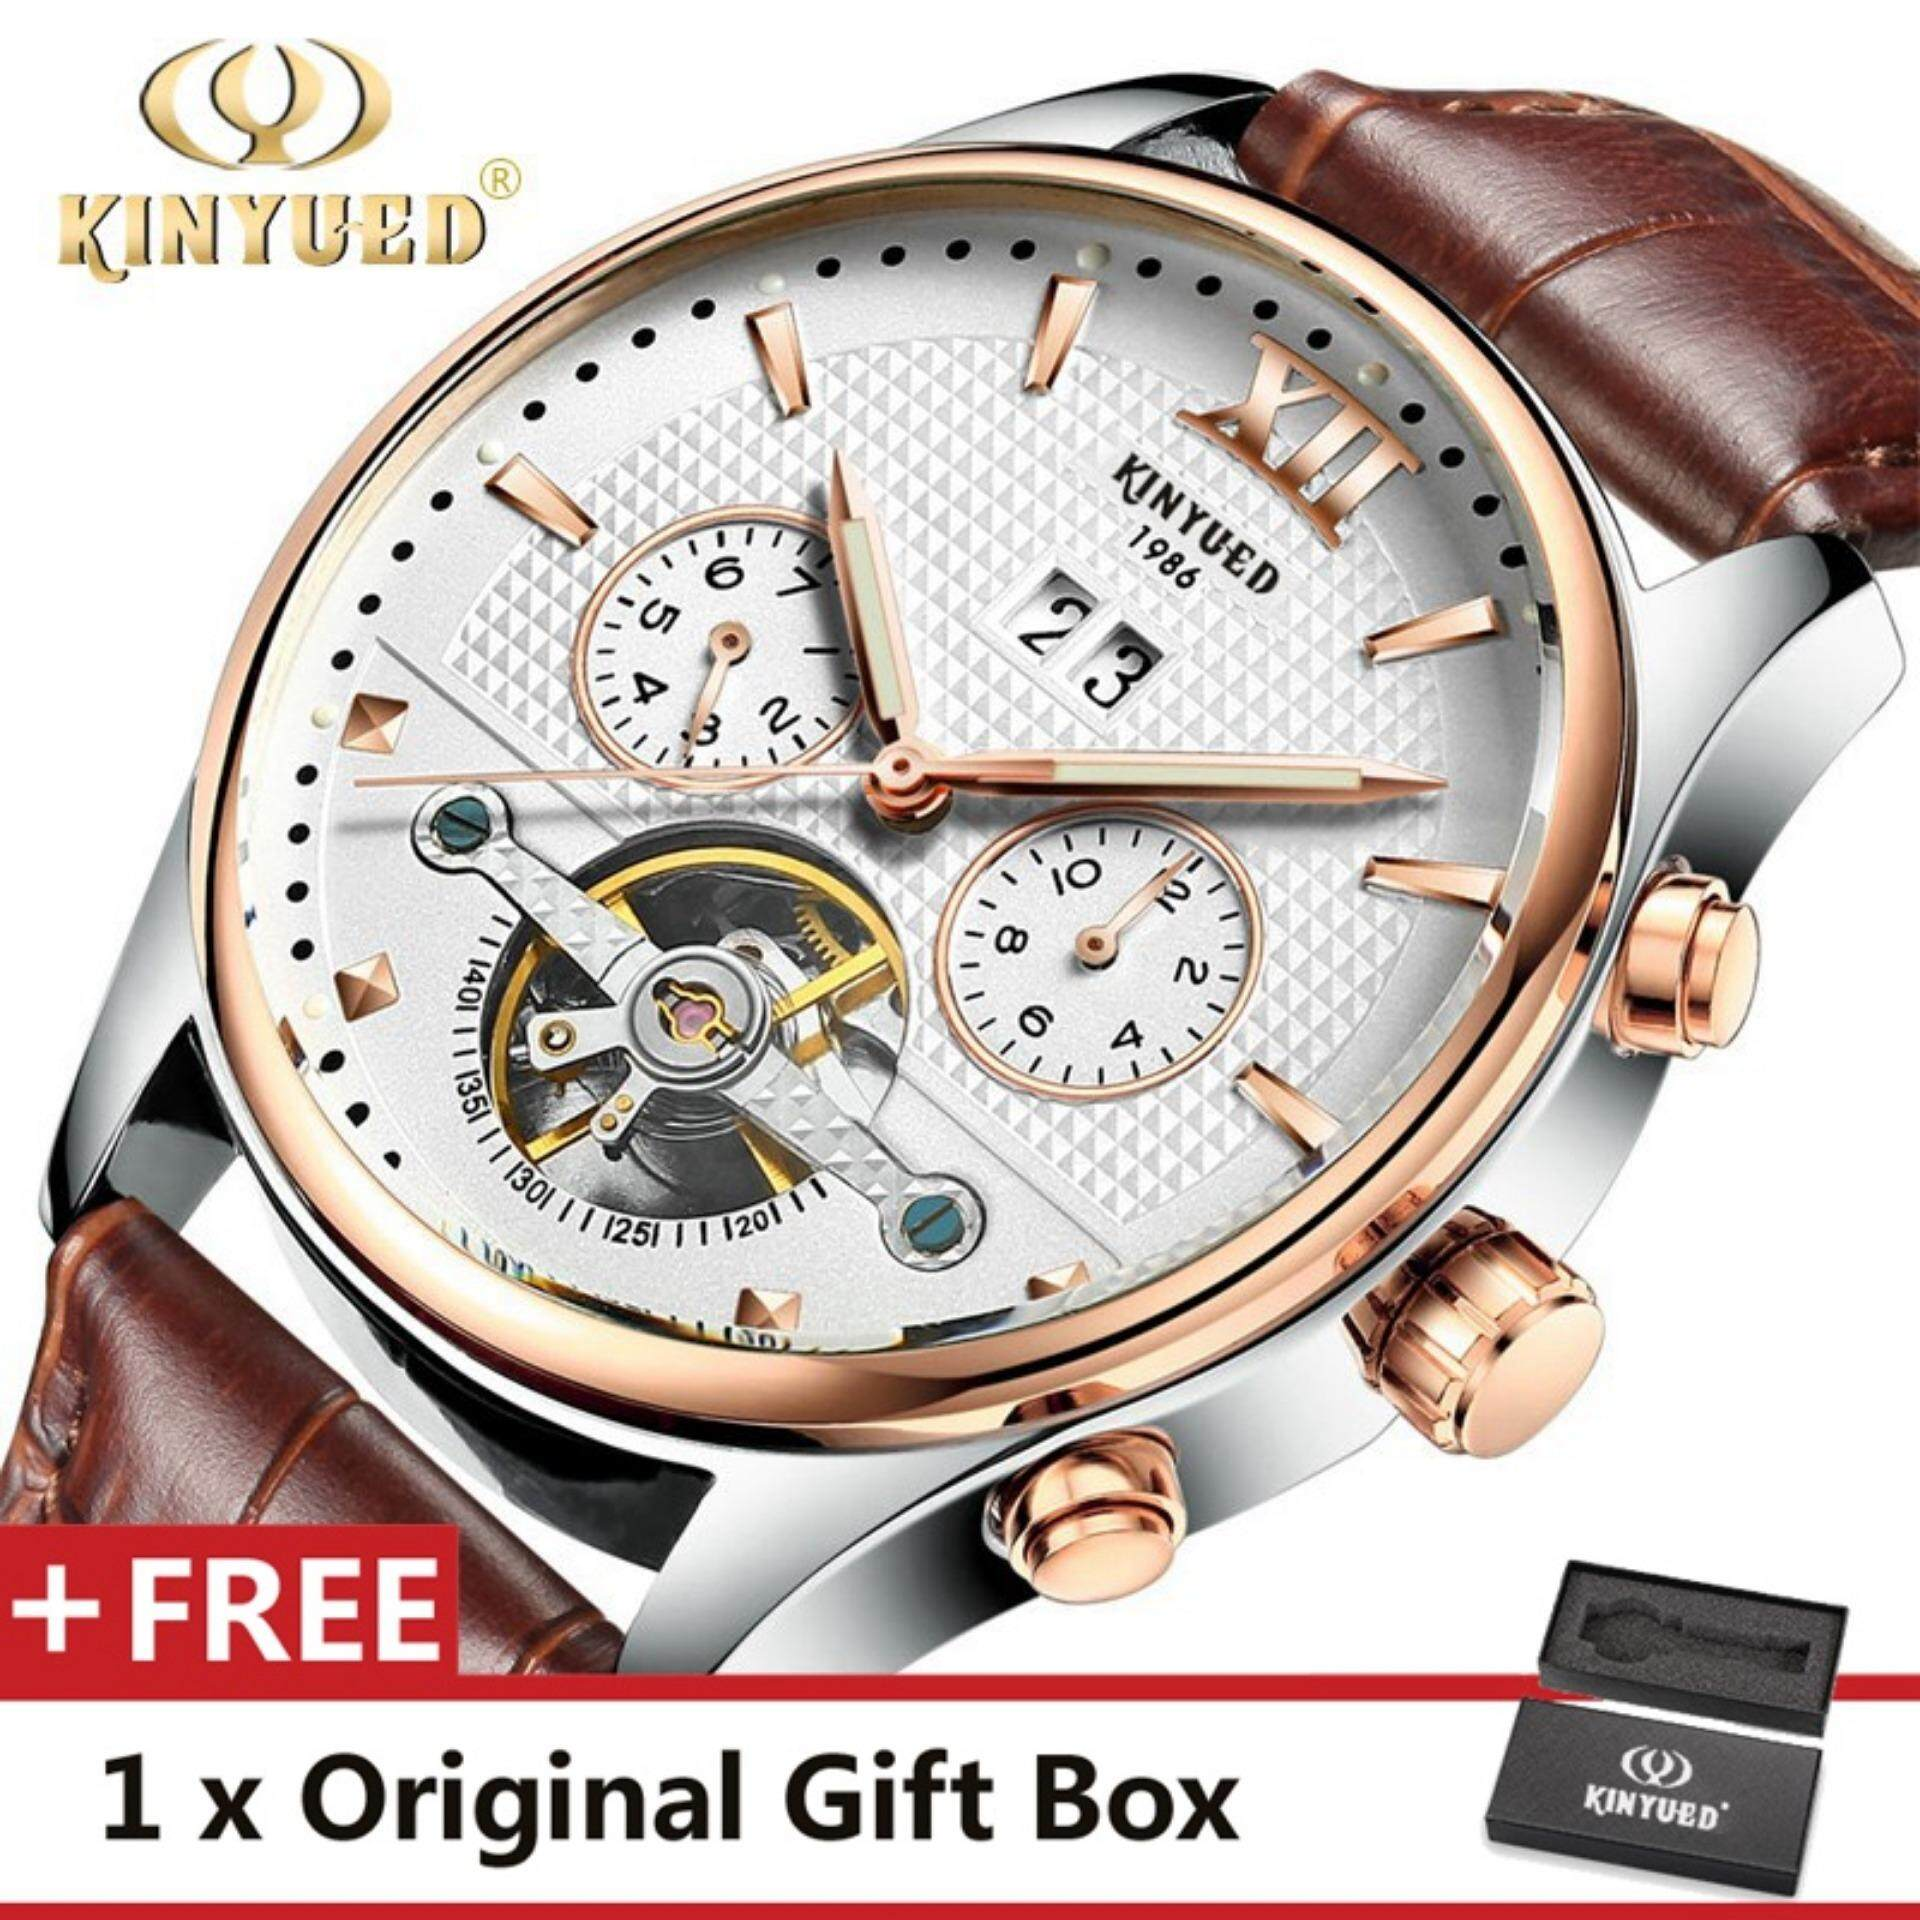 mercier and business online home watches scout affordable legend baume store uk luxury indian watch